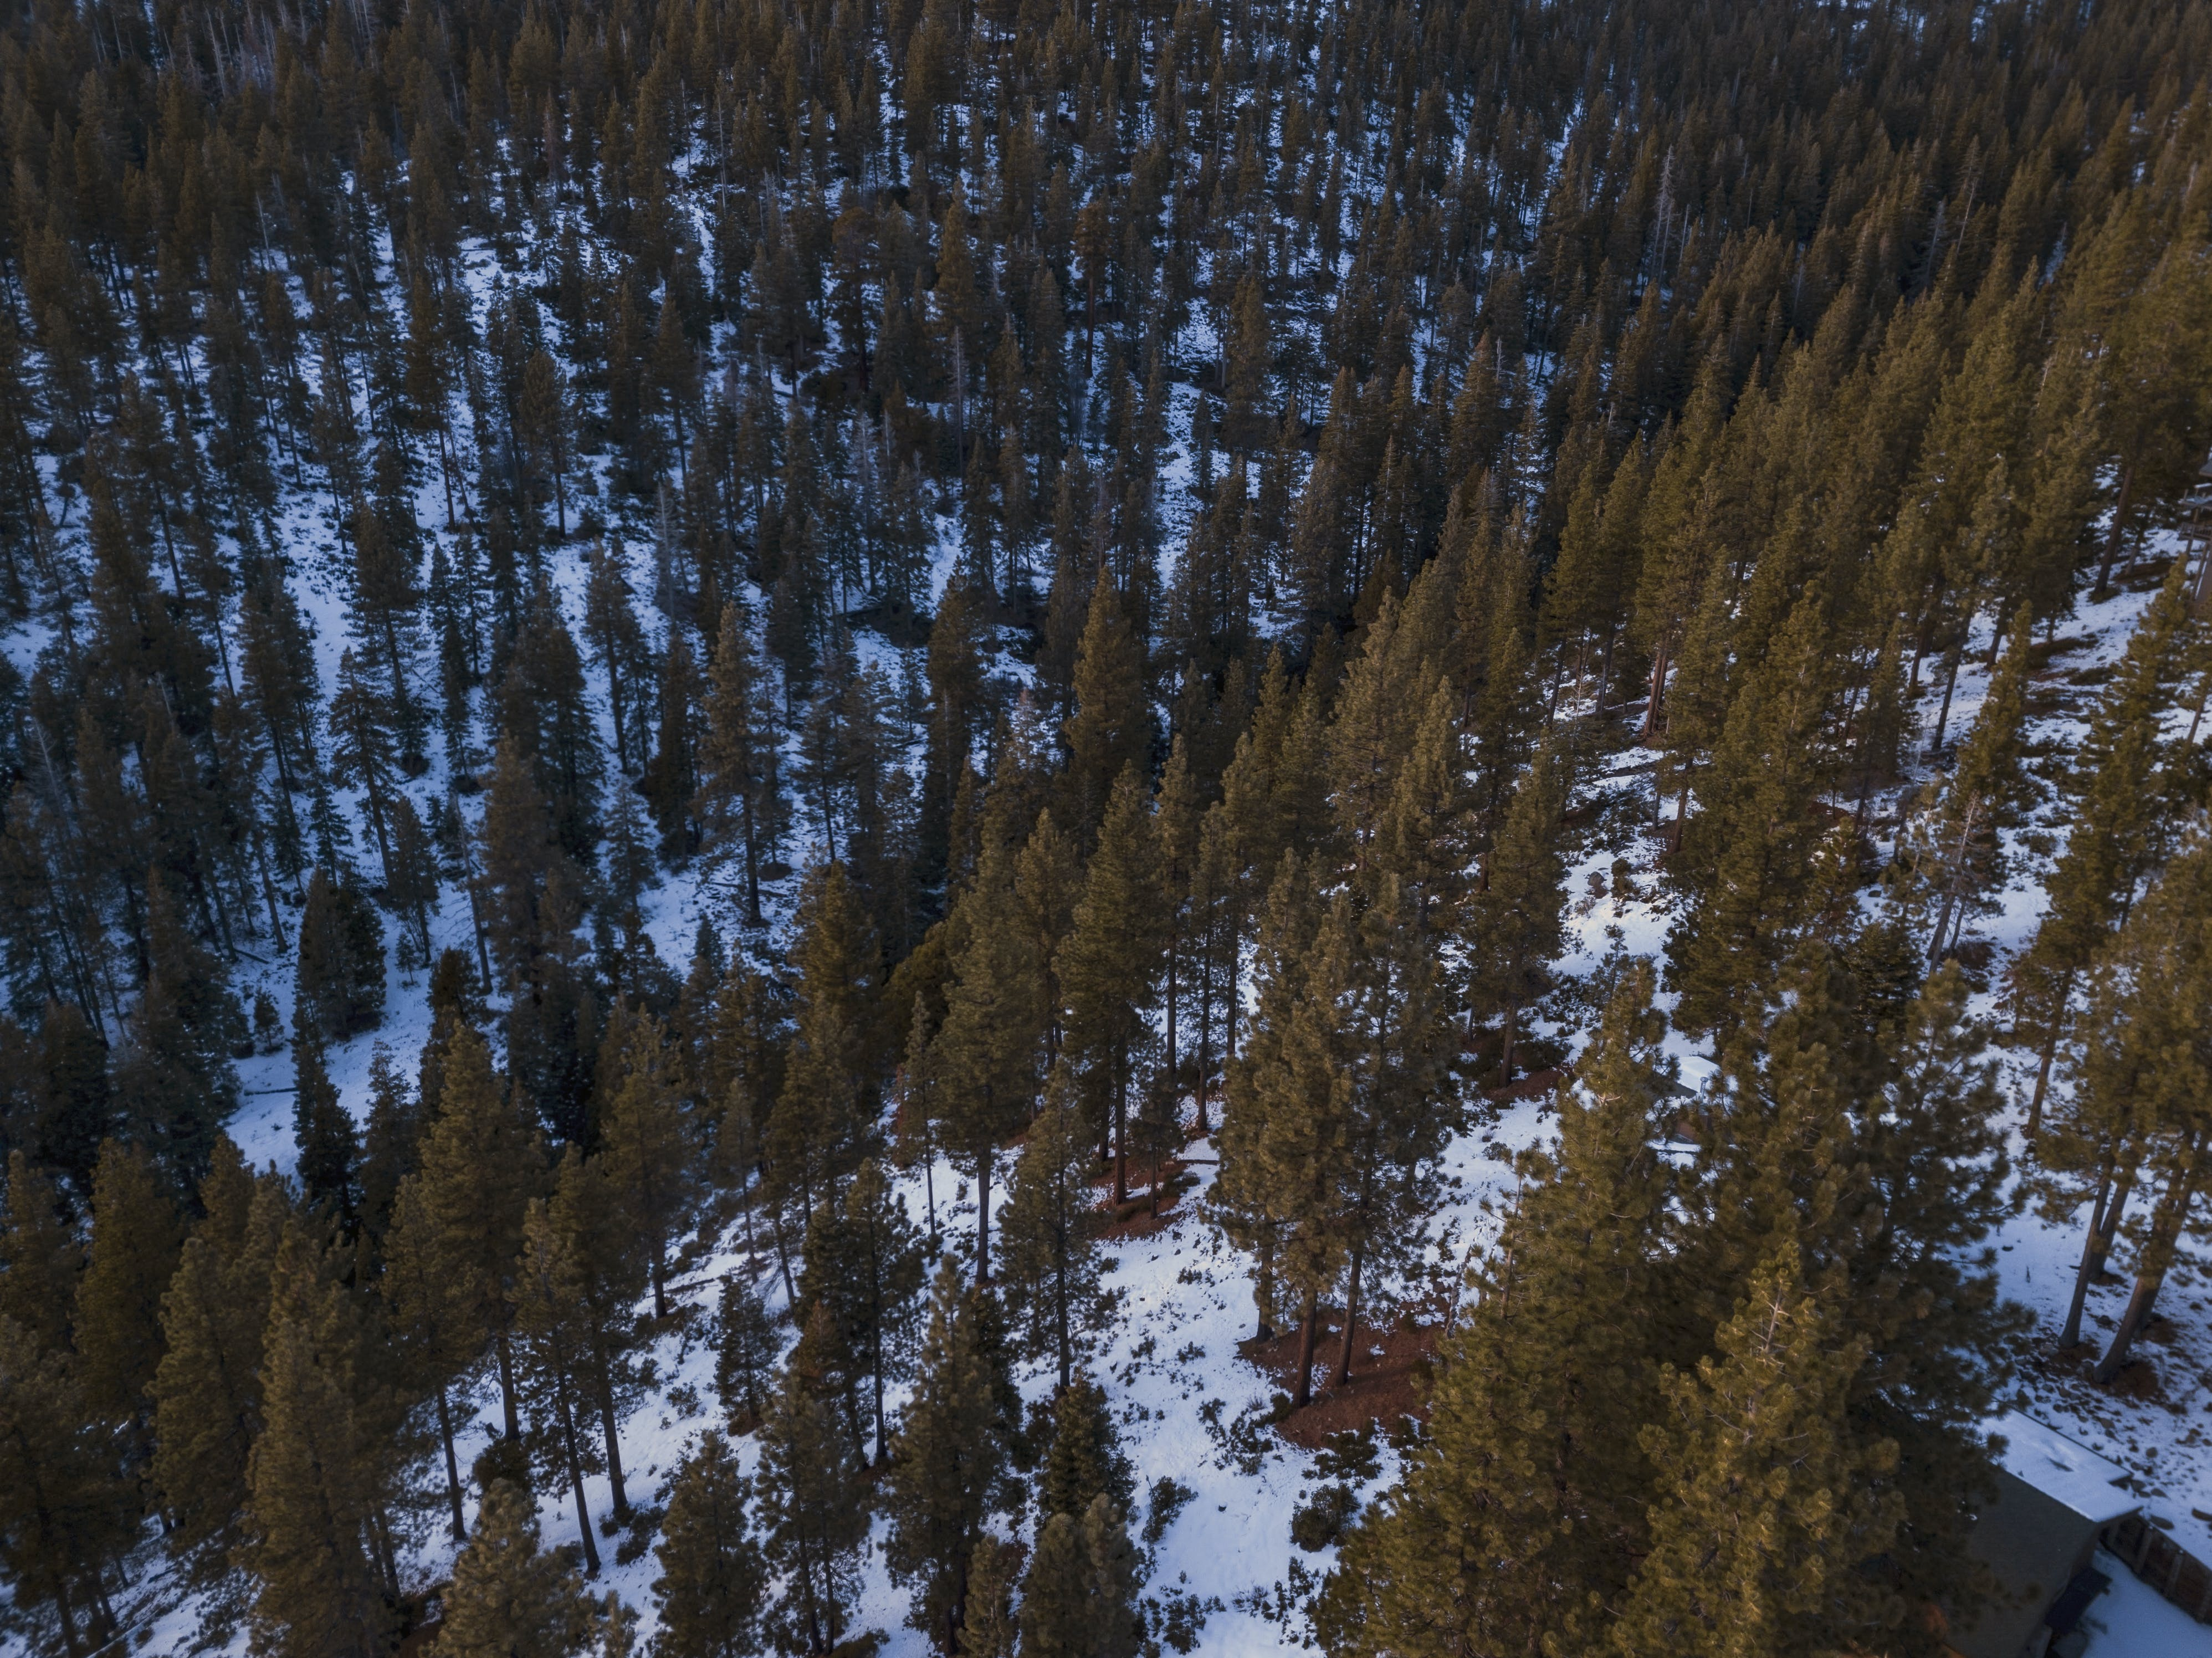 Aerial View of Conifer trees